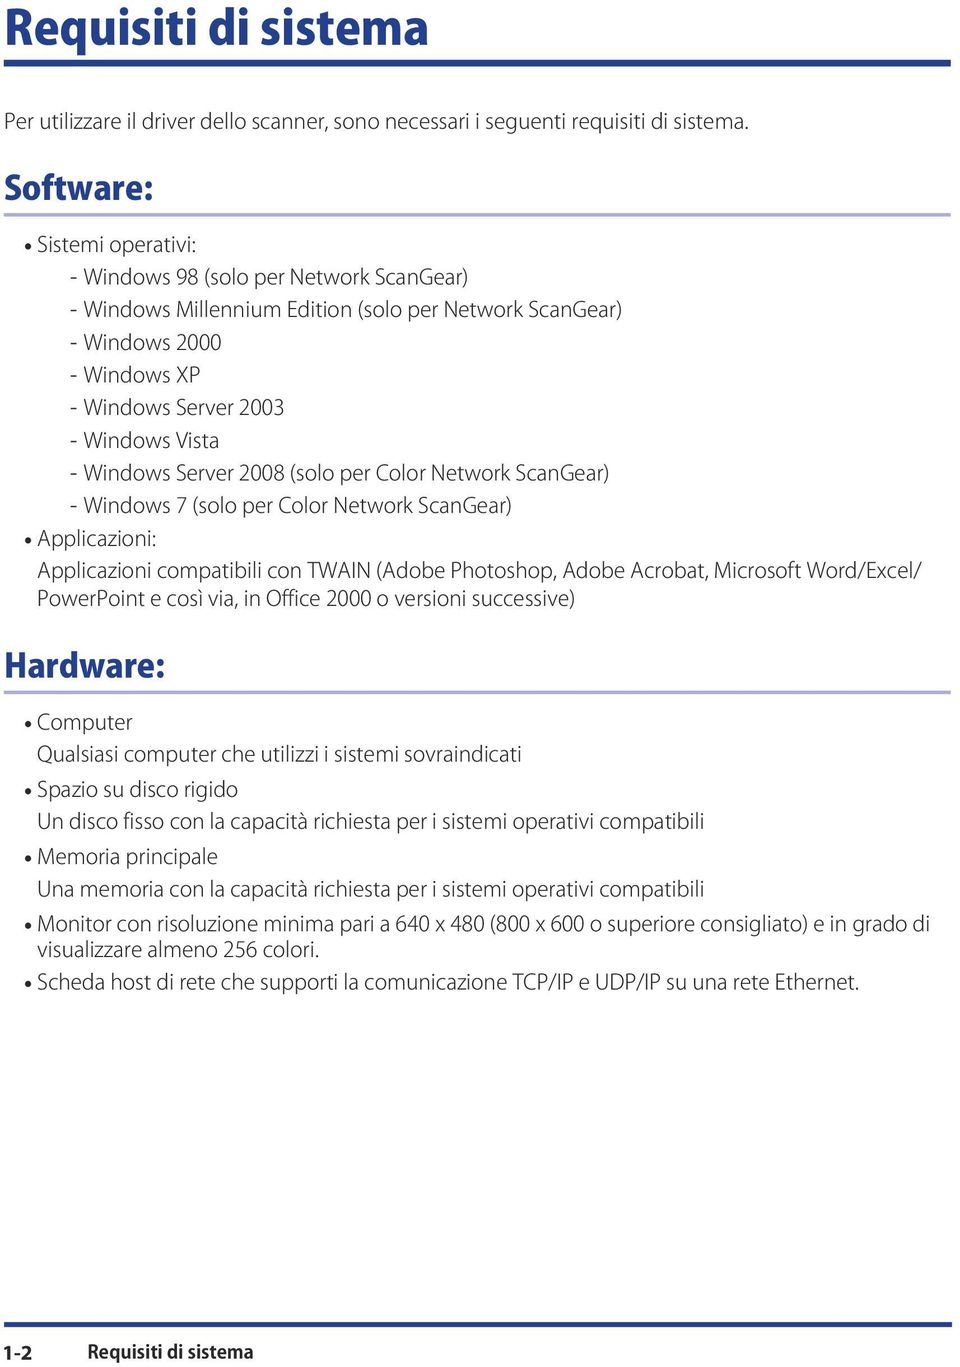 2008 (solo per Color Network ScanGear) Windows 7 (solo per Color Network ScanGear) Applicazioni: Applicazioni compatibili con TWAIN (Adobe Photoshop, Adobe Acrobat, Microsoft Word/Excel/ PowerPoint e